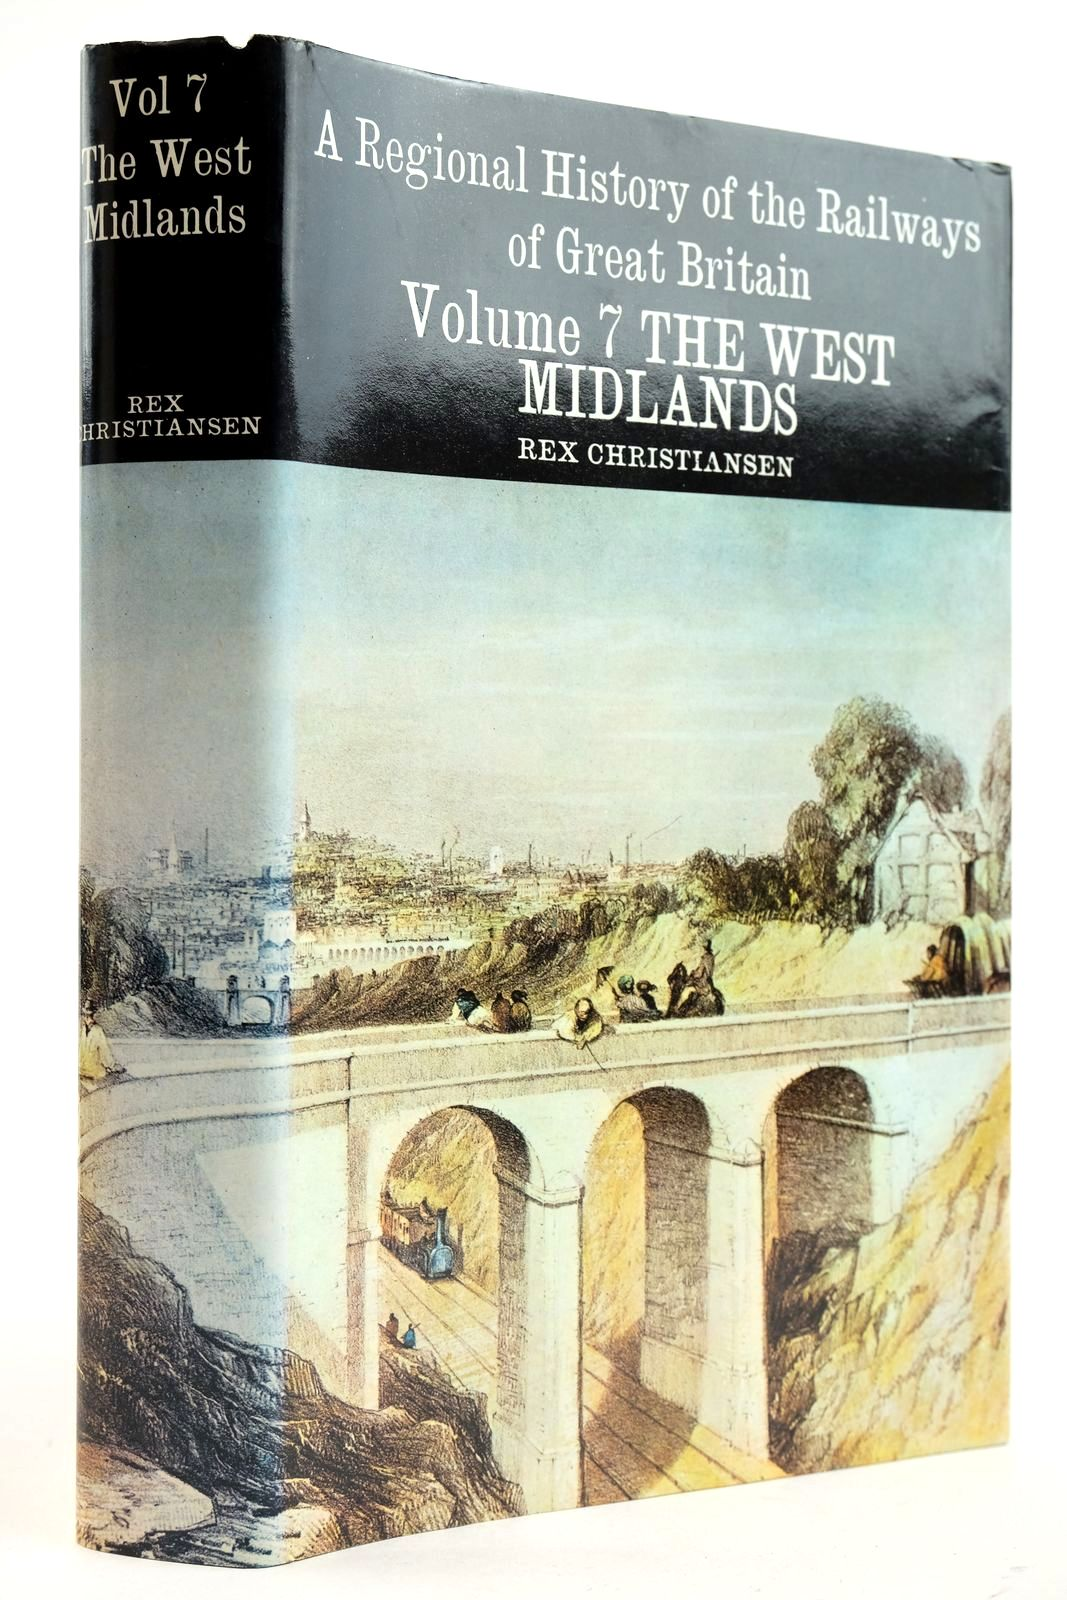 Photo of A REGIONAL HISTORY OF THE RAILWAYS OF GREAT BRITAIN VOLUME 7 THE WEST MIDLANDS written by Christiansen, Rex published by David St John Thomas, David & Charles (STOCK CODE: 2133114)  for sale by Stella & Rose's Books